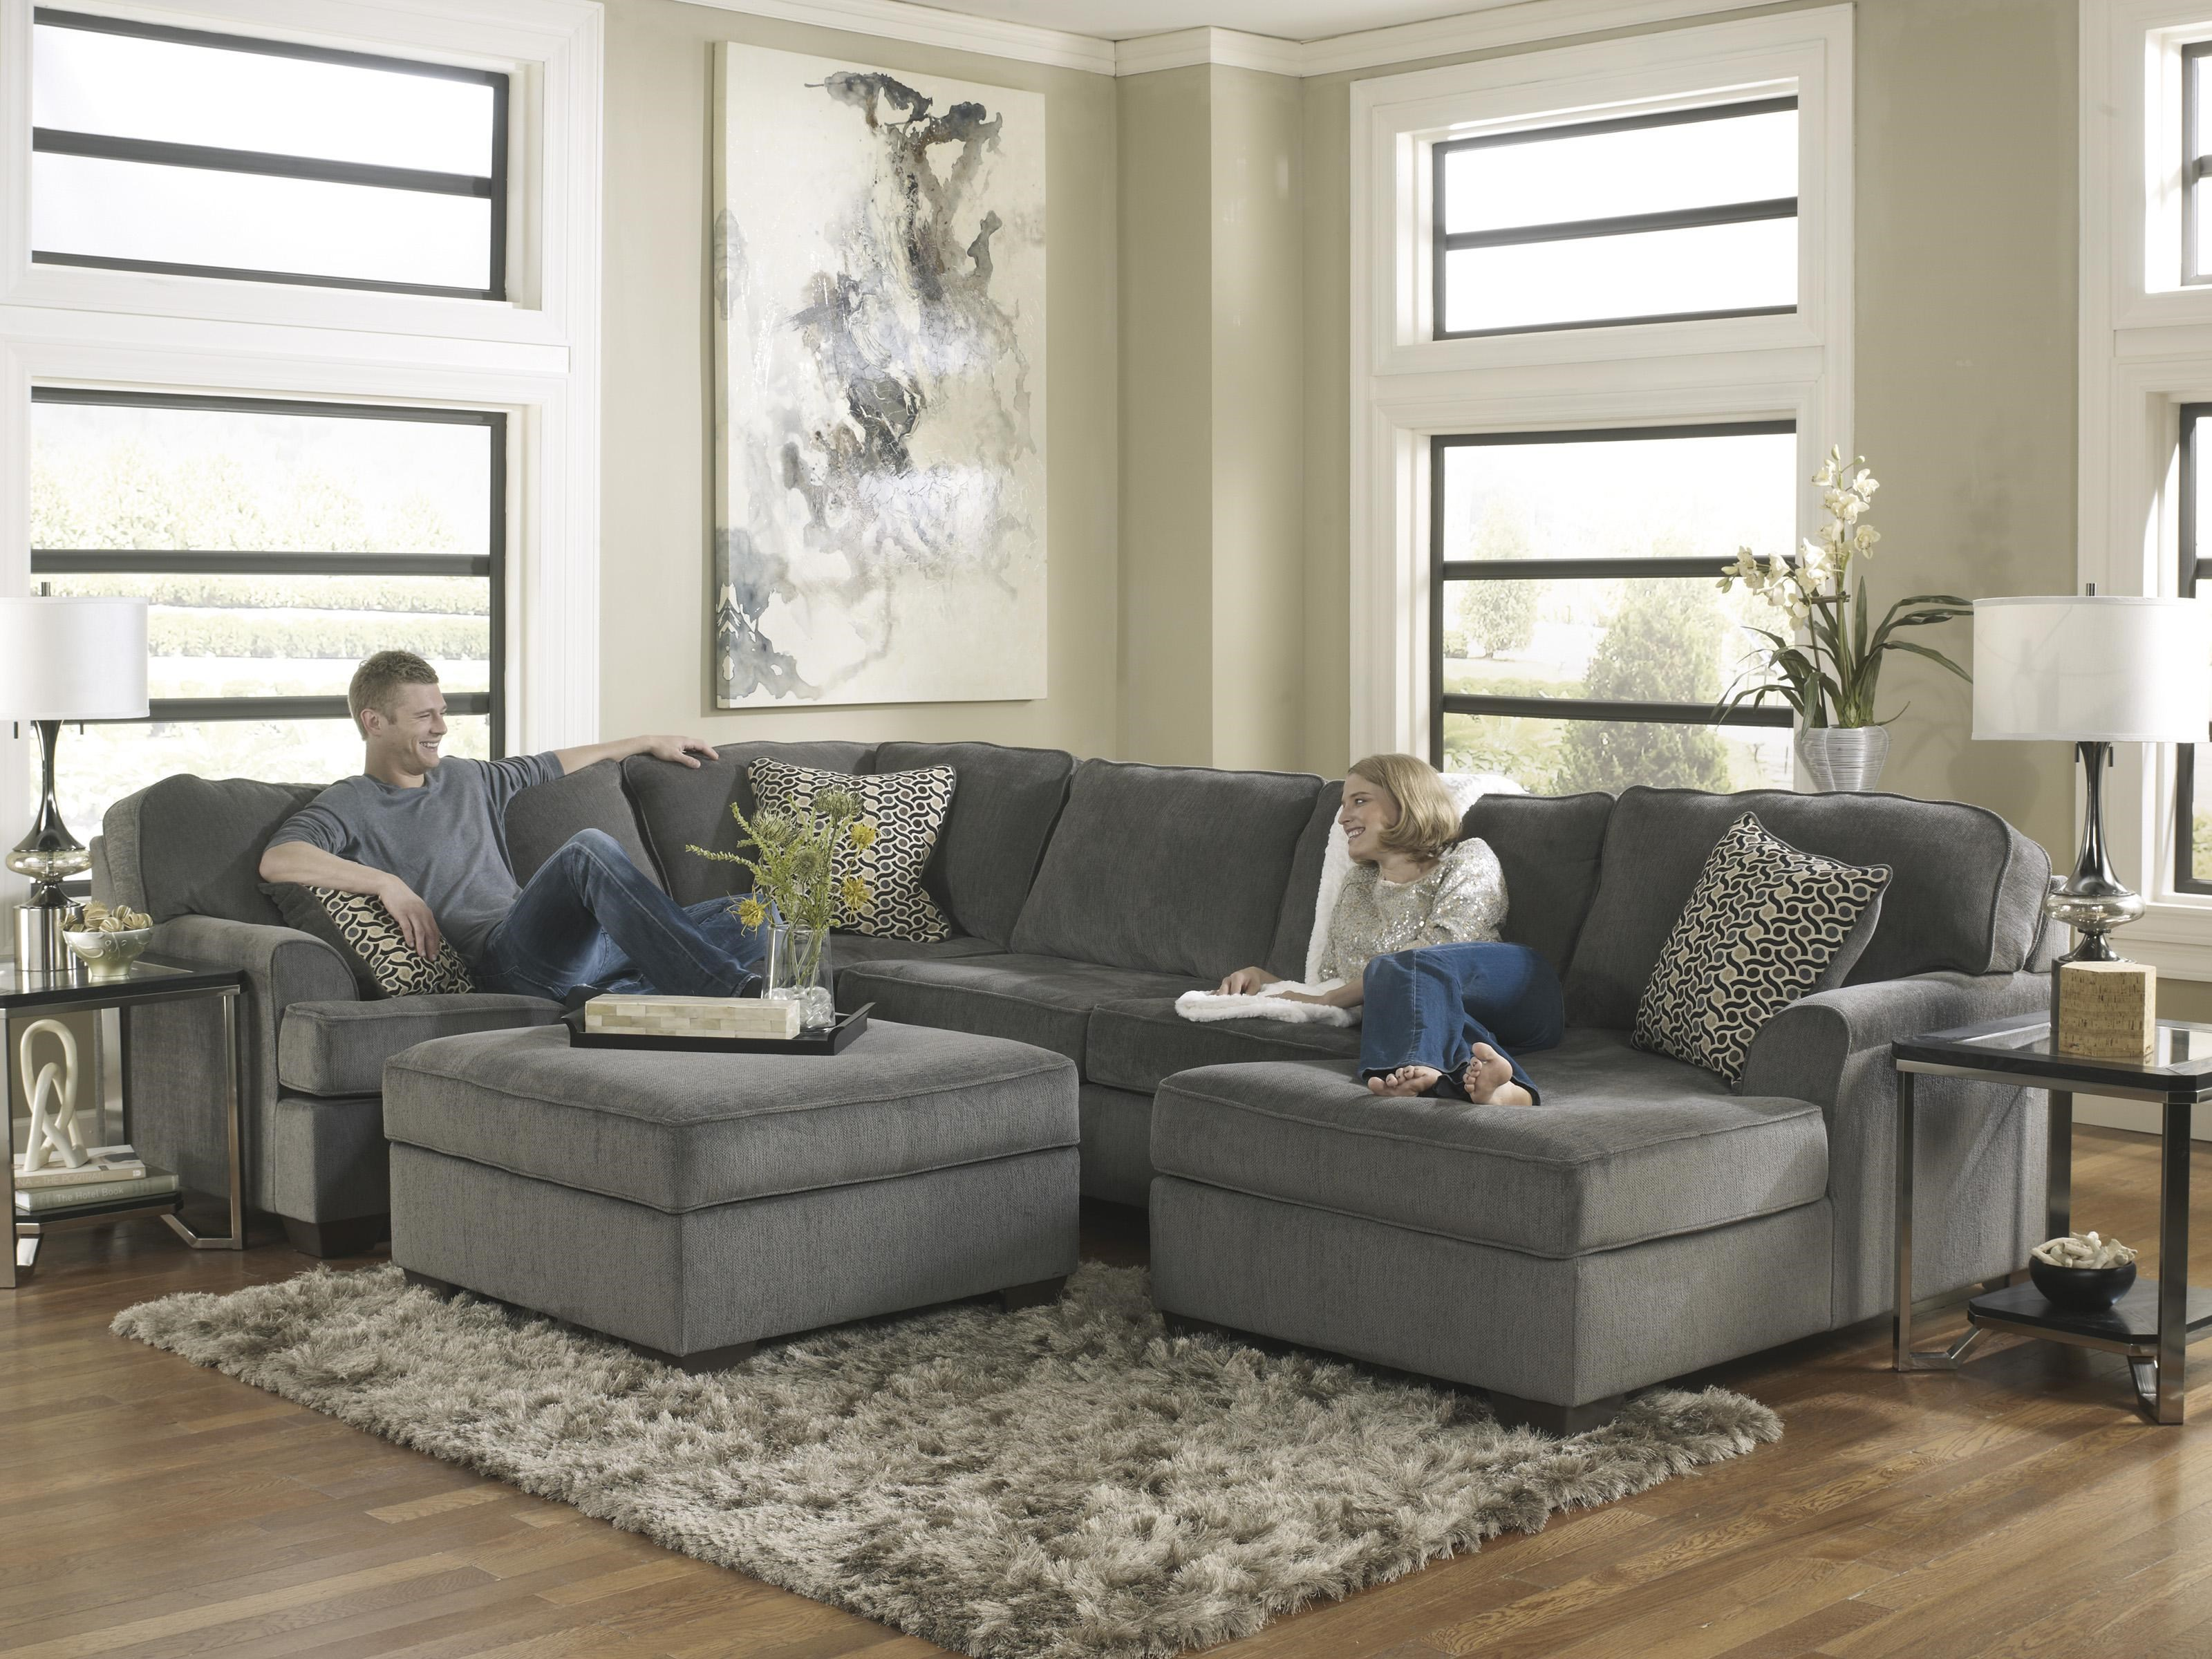 Loric   Smoke Square Cocktail Ottoman With Storage U0026 Removable Top By Ashley  Furniture